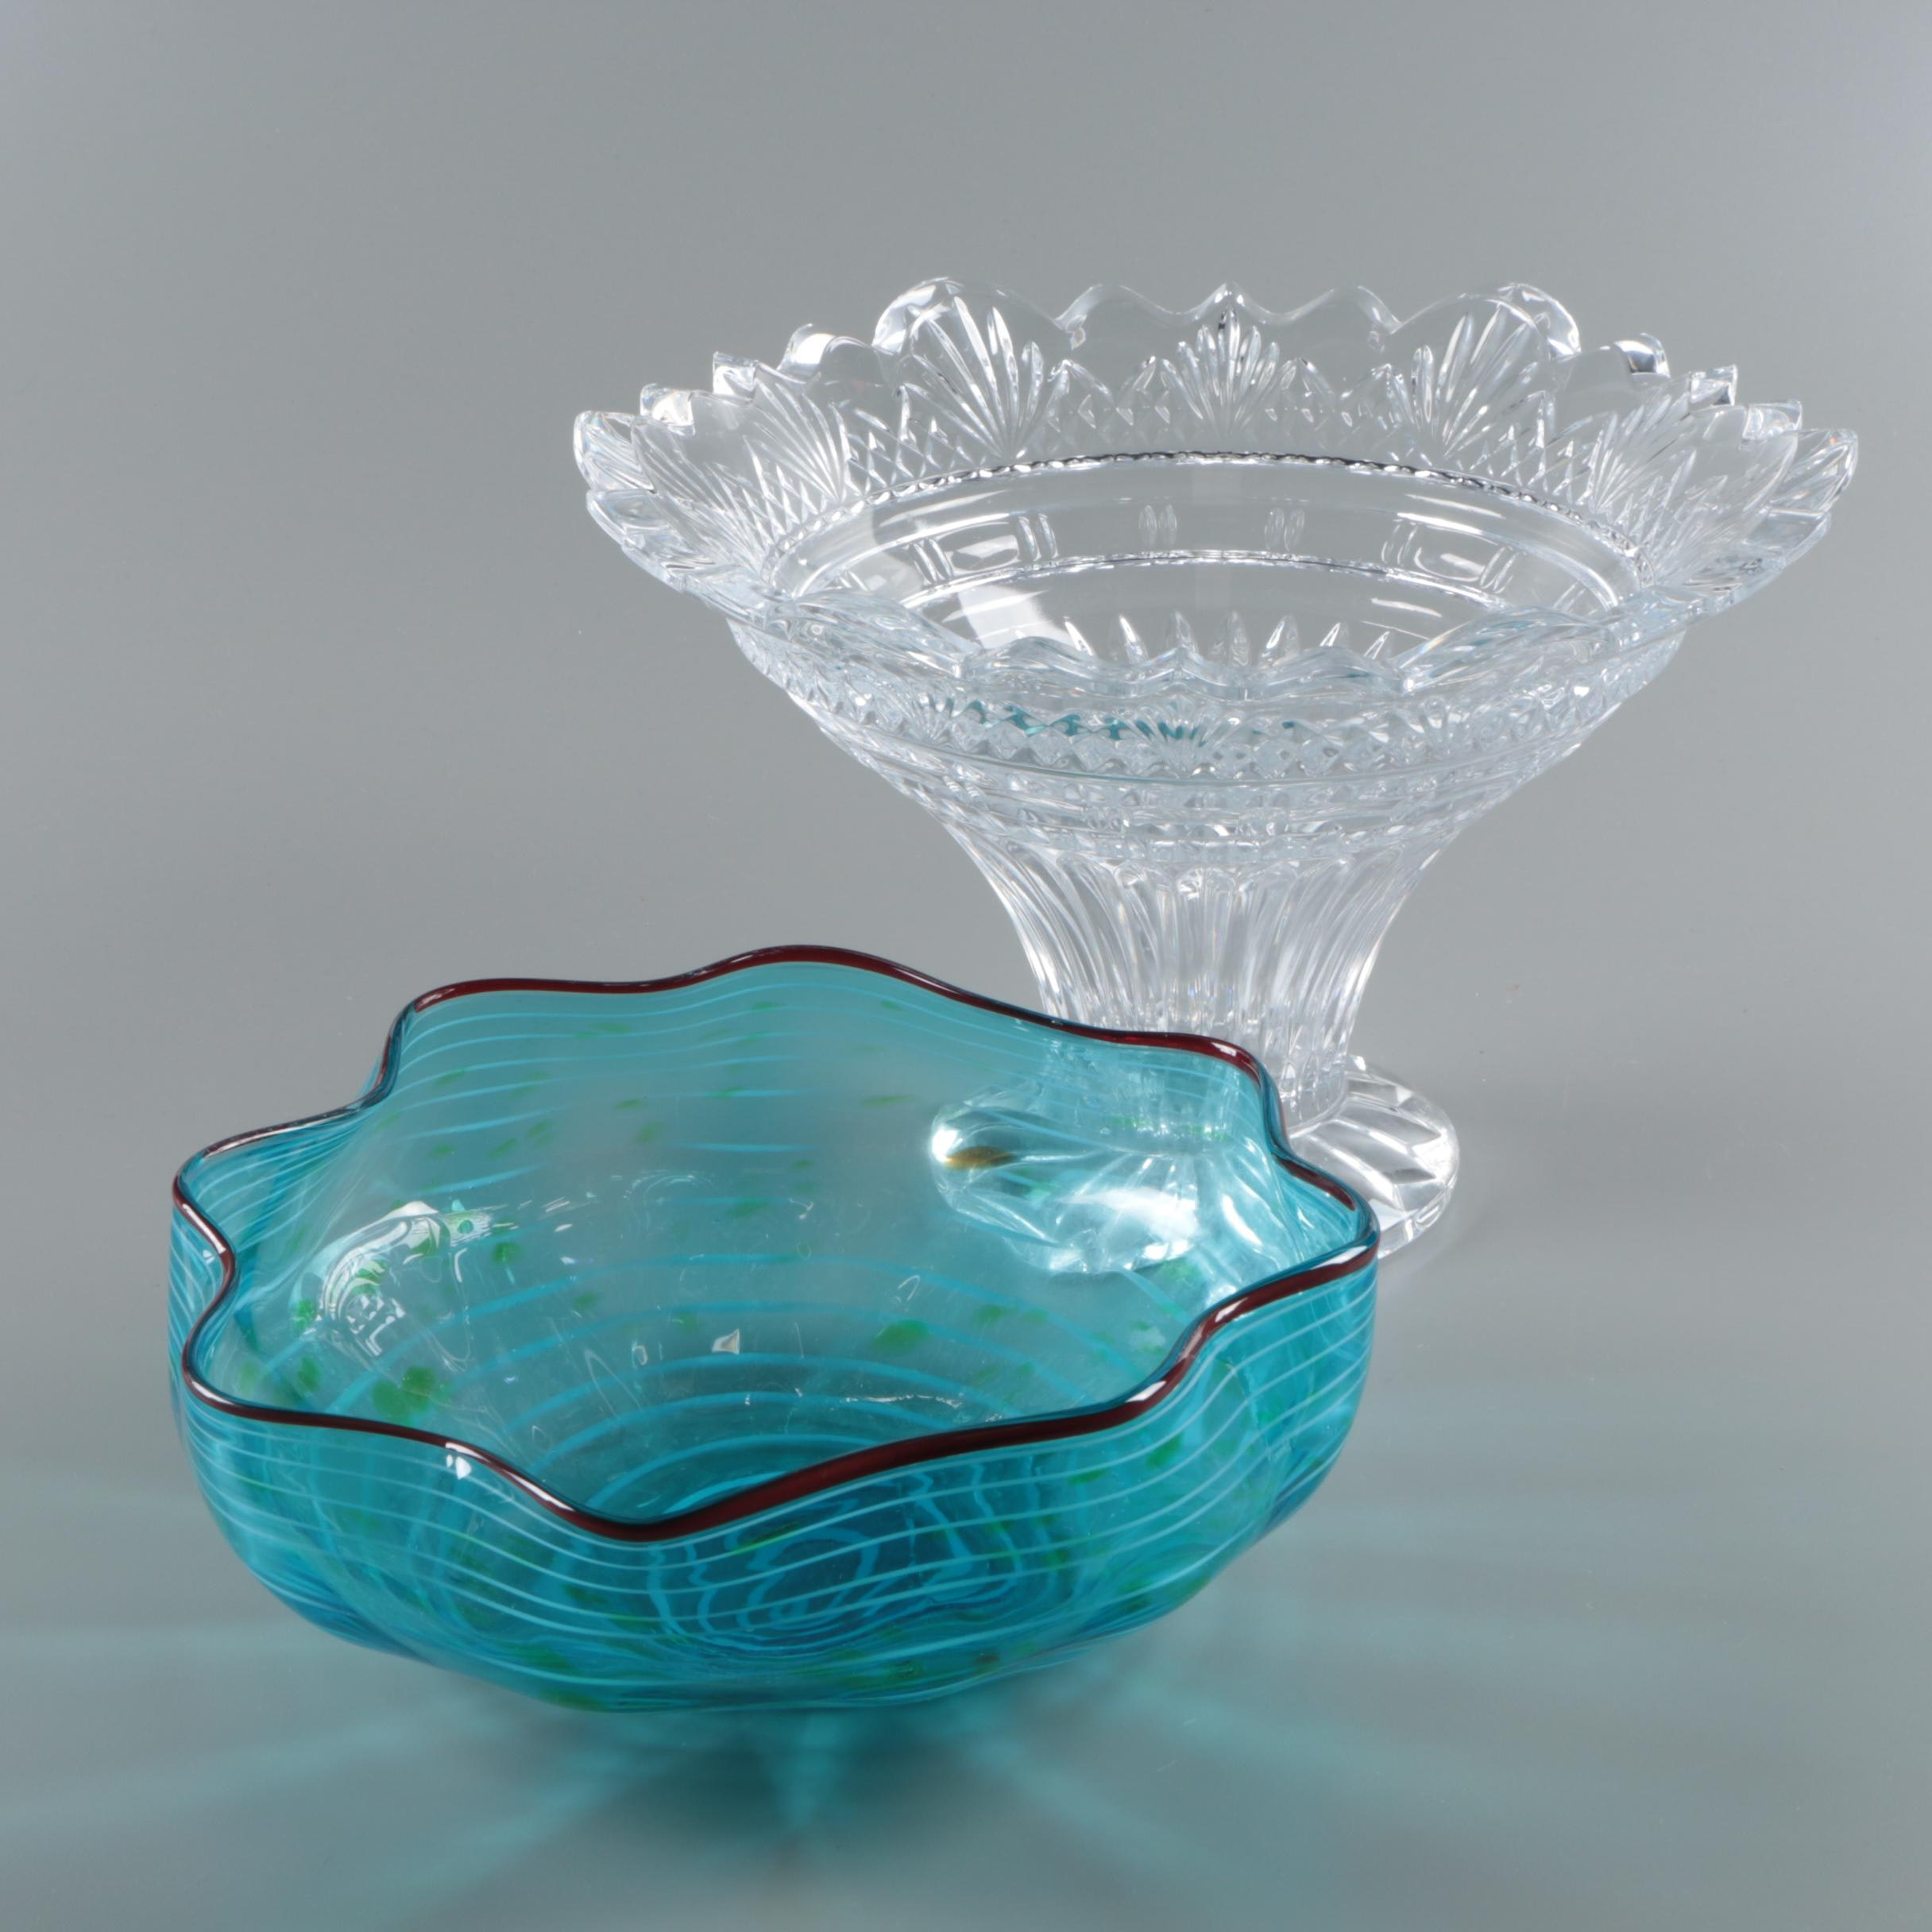 Spiral Motif Blown Glass Bowl with Flared Centerpiece